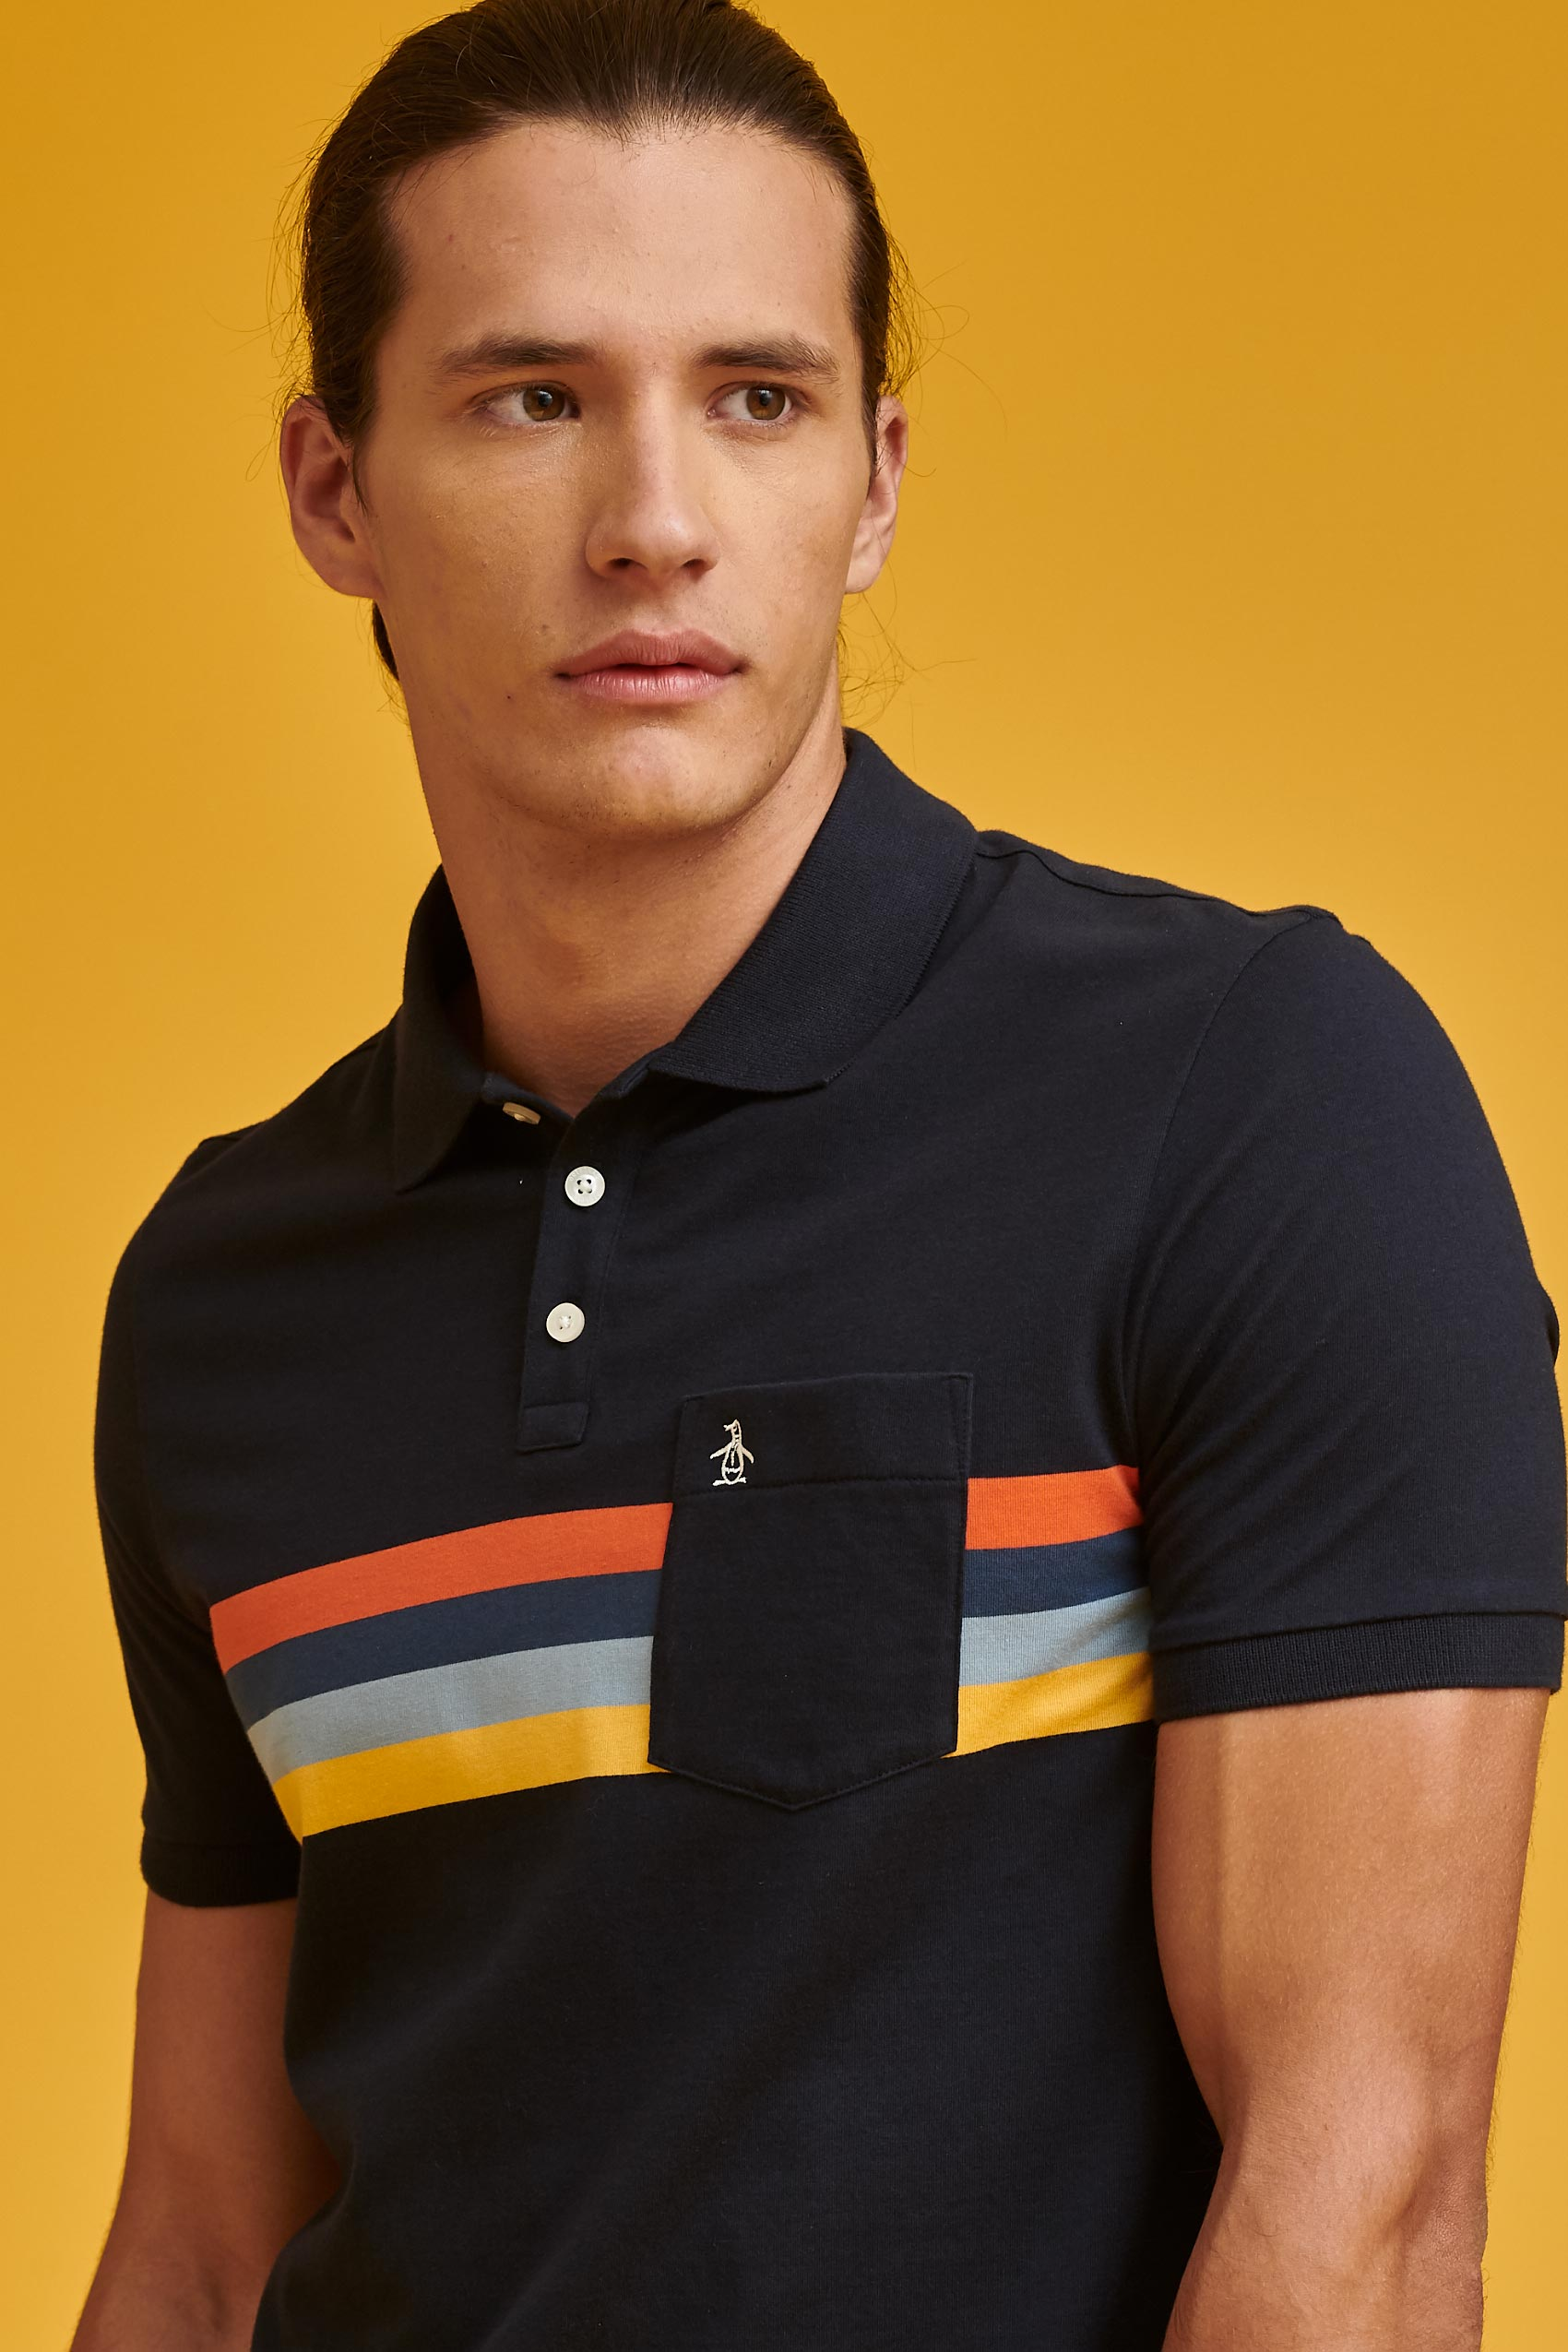 penguin_ss-sleeve-tape-polo_53-26-2020__picture-15037